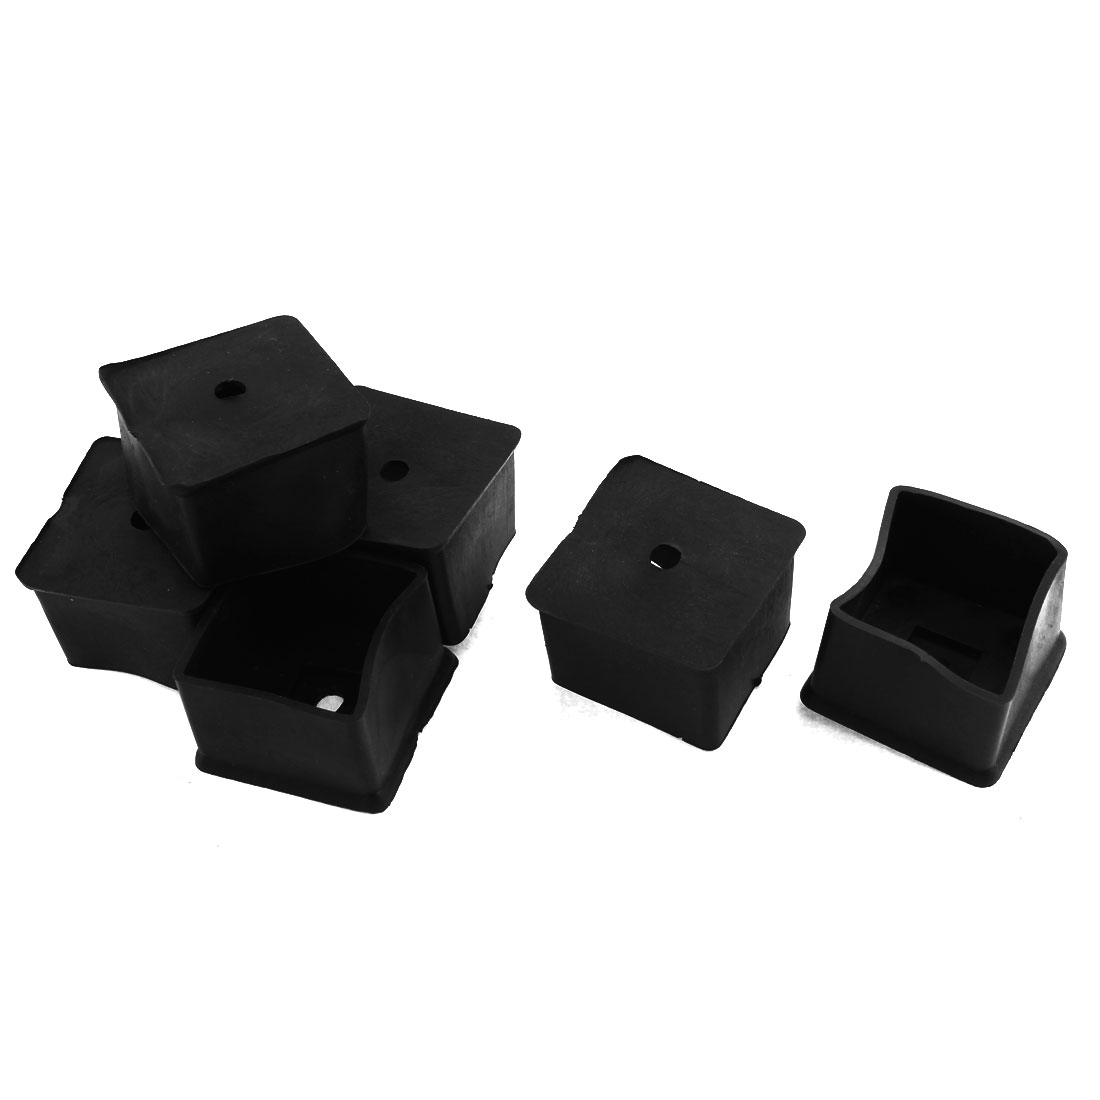 40mm x 40mm Square Rubber Chair Table Leg End Caps Furniture Foot Covers 6 Pcs